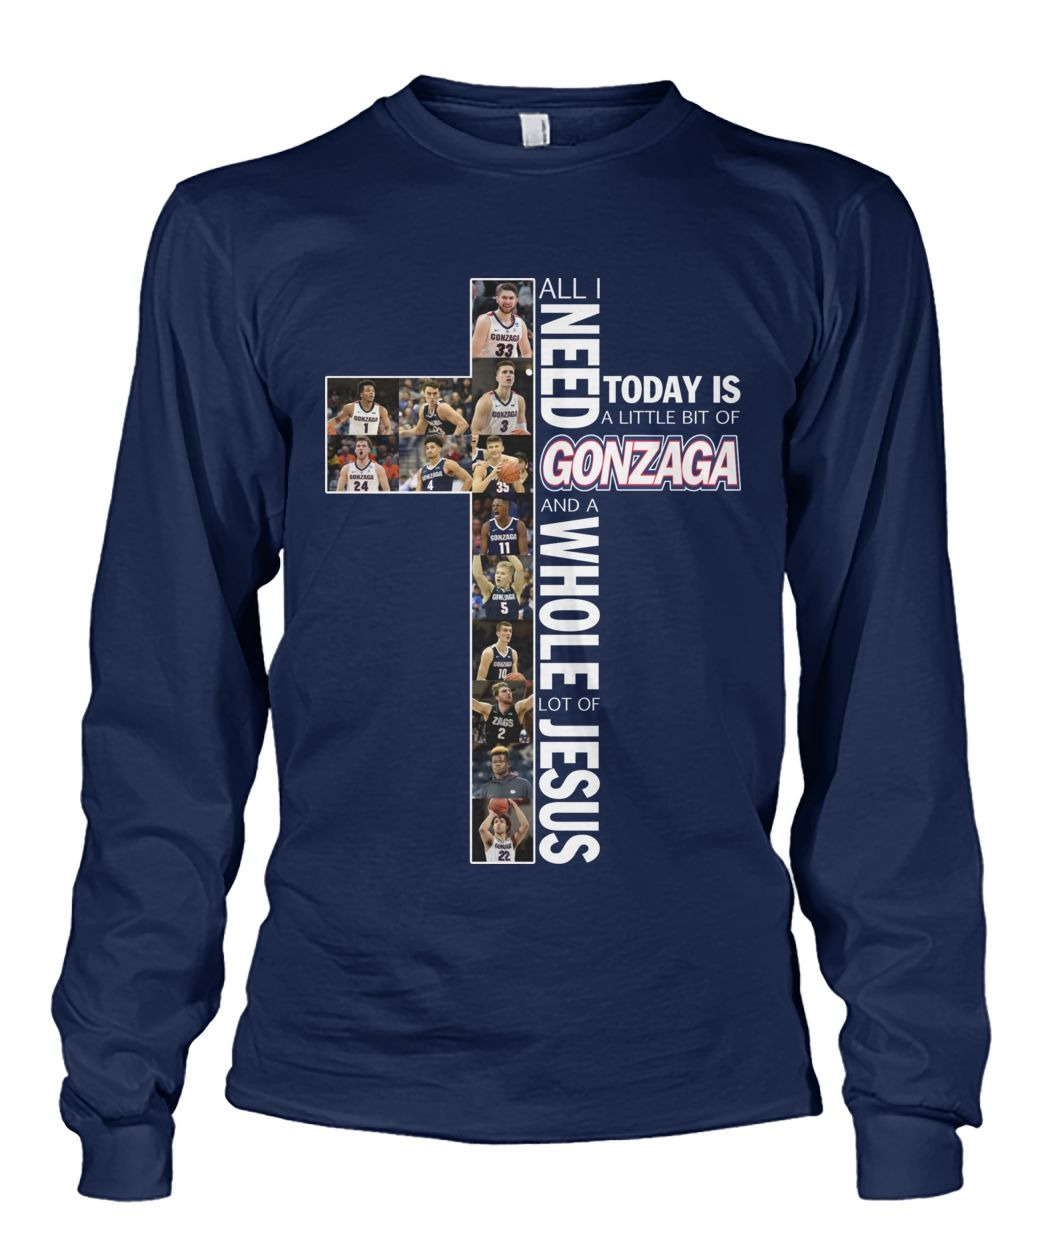 All i need today is a little bit of Gonzaga and a whole lot of Jesus long sleeved